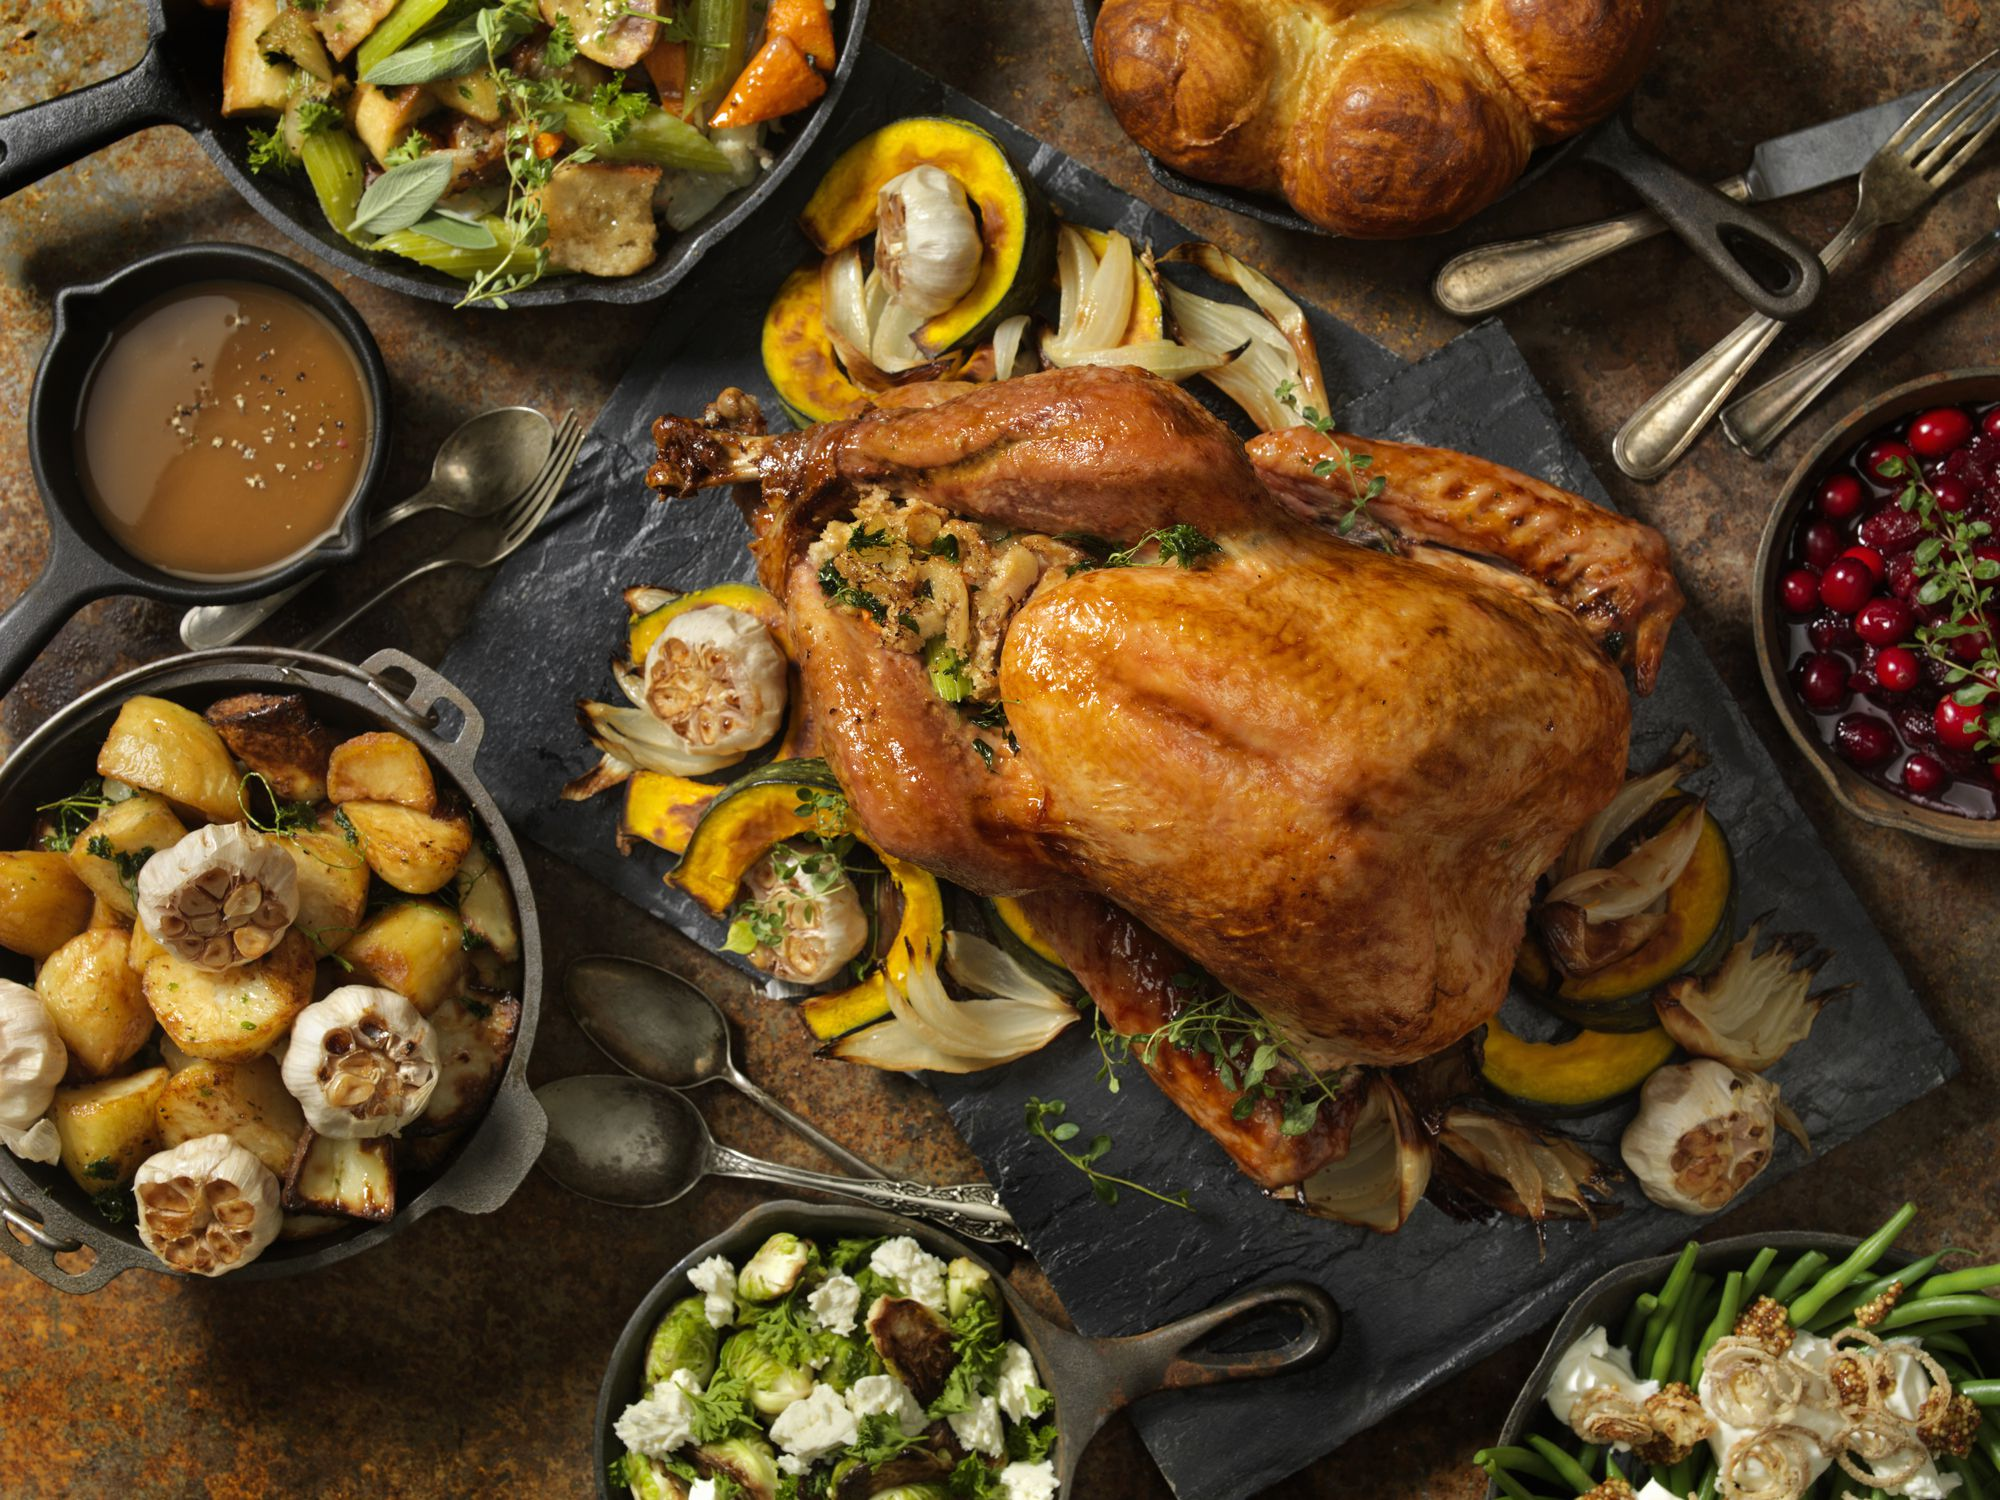 Make Ahead Thanksgiving Recipes and Timetable